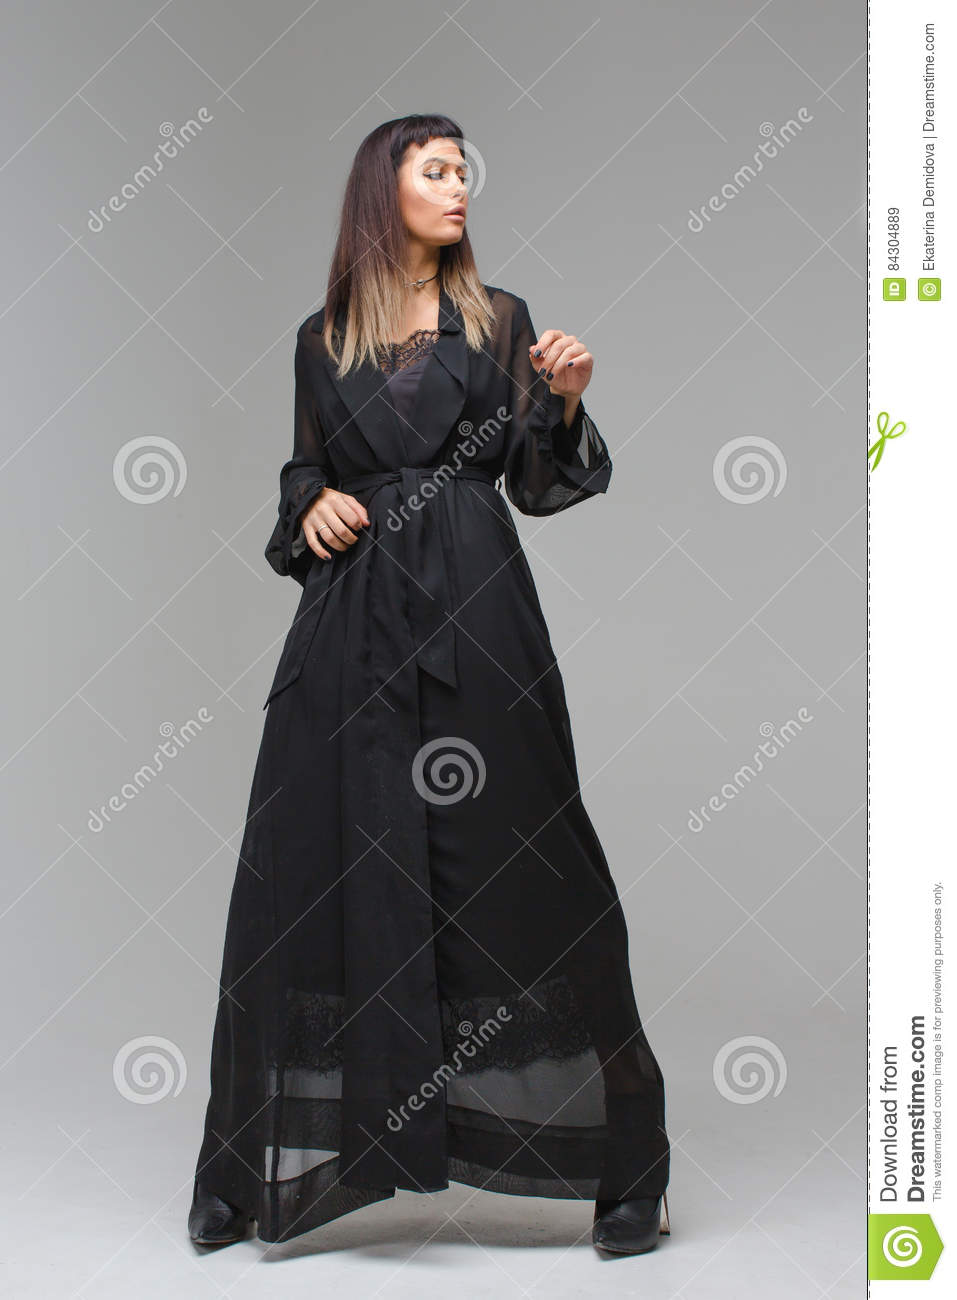 Woman In Transparent Gown Underwear And Shoes Stock Image - Image of ...